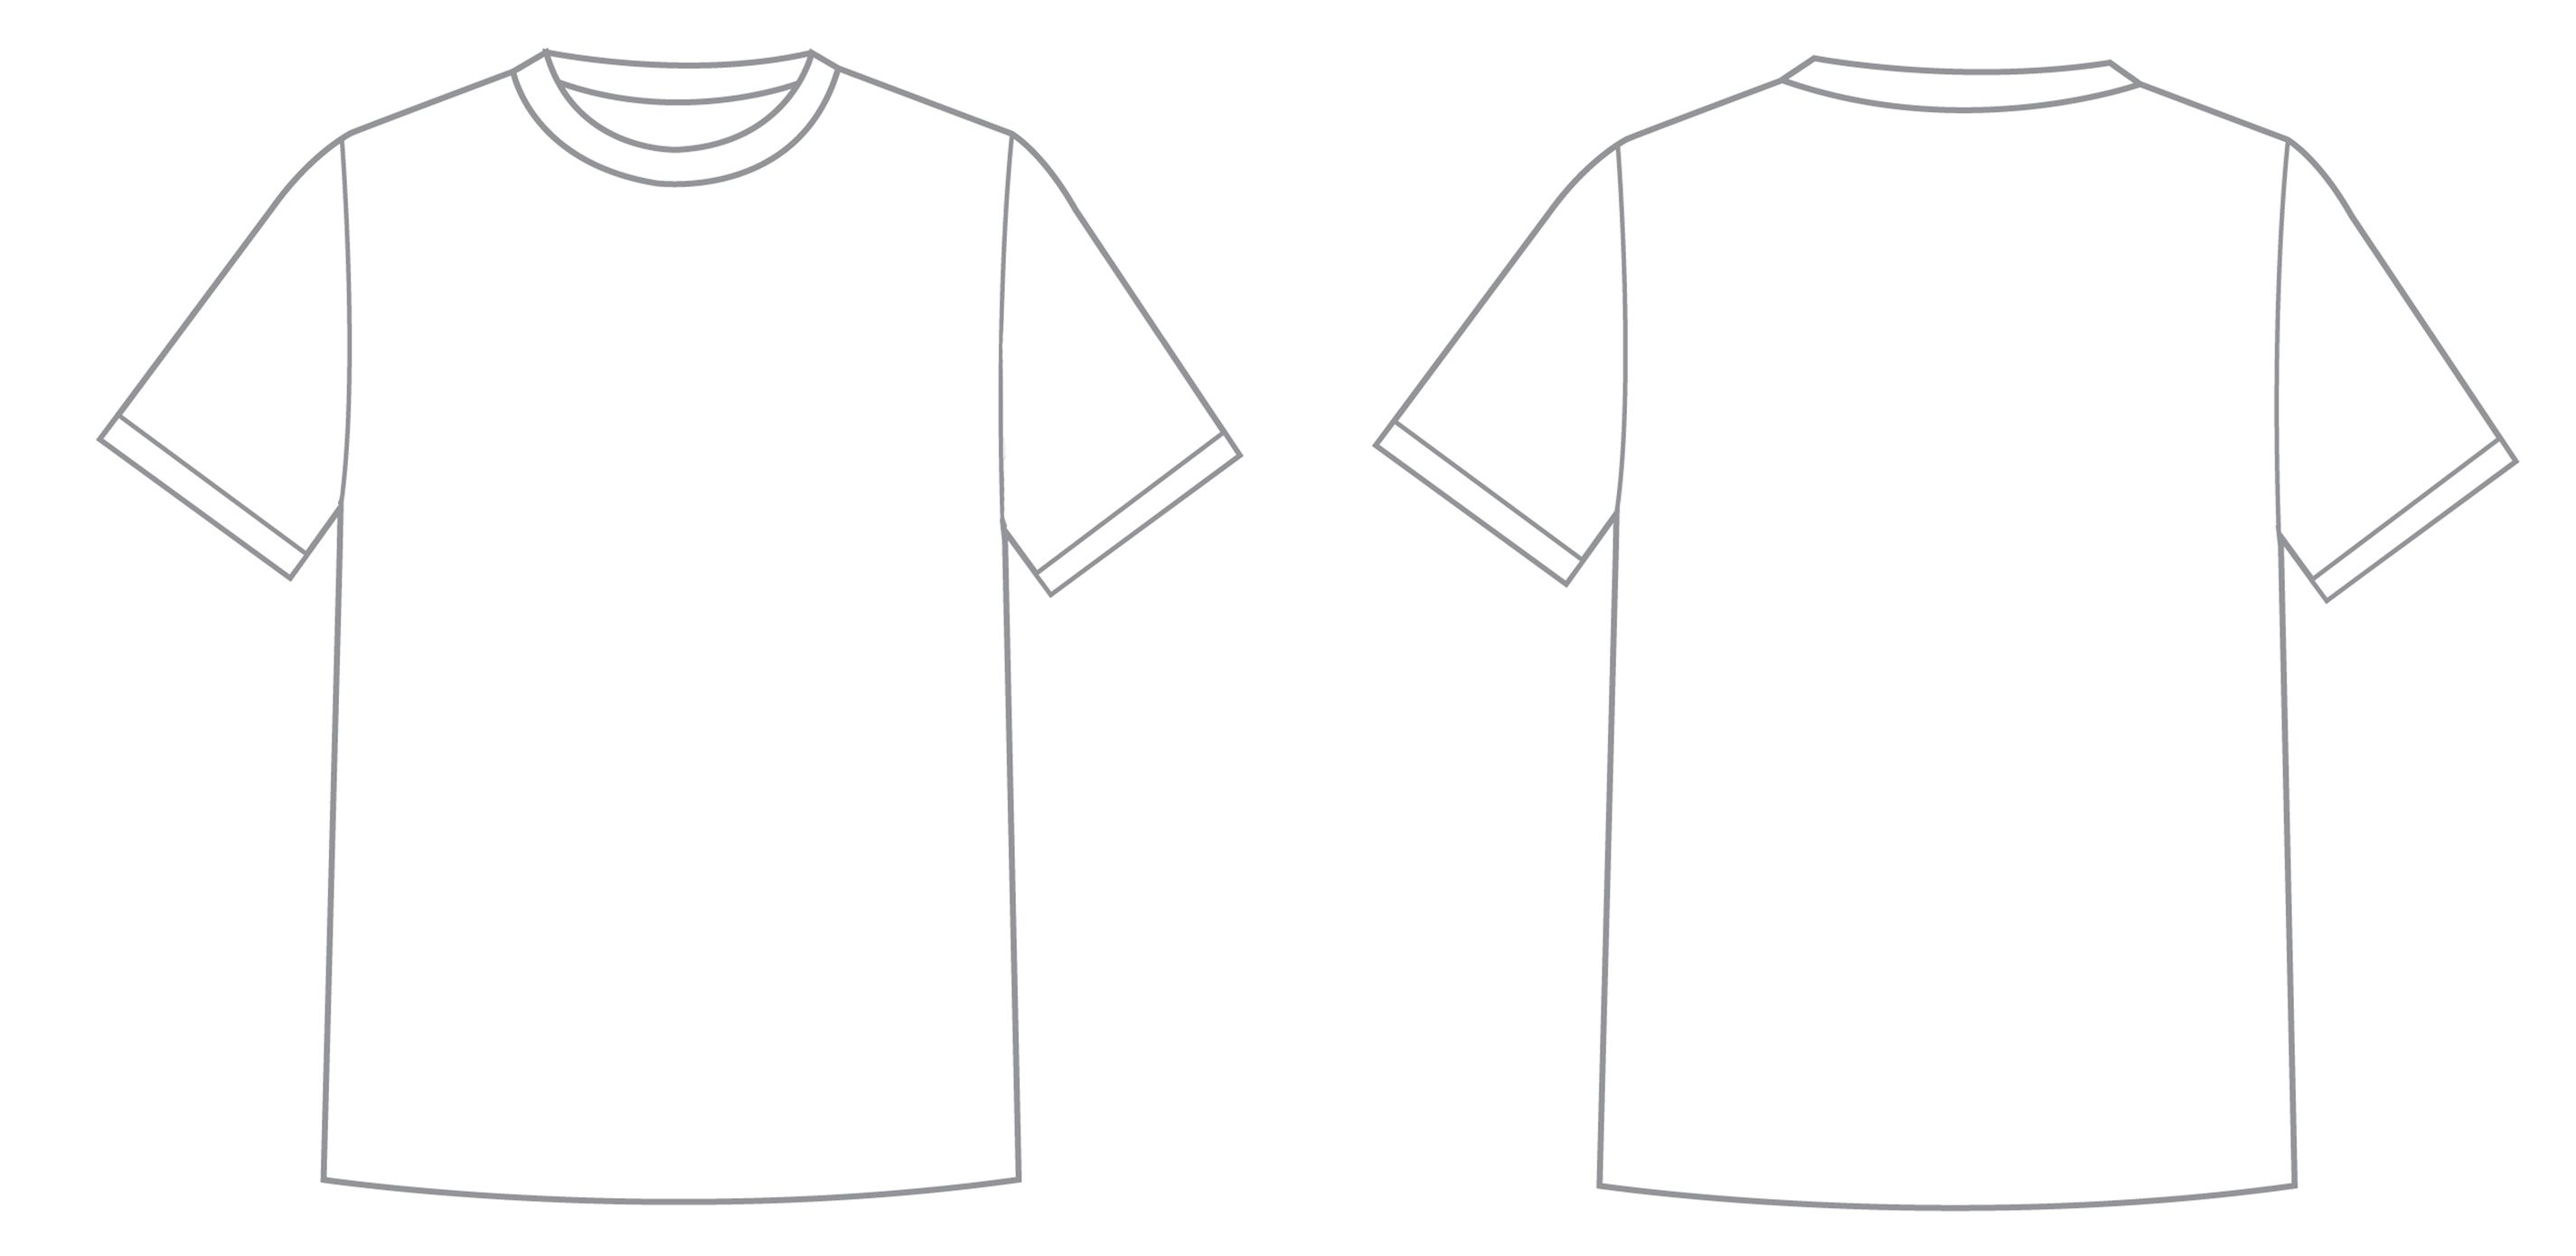 T shirt template google search comedy pinterest for Back t shirt template